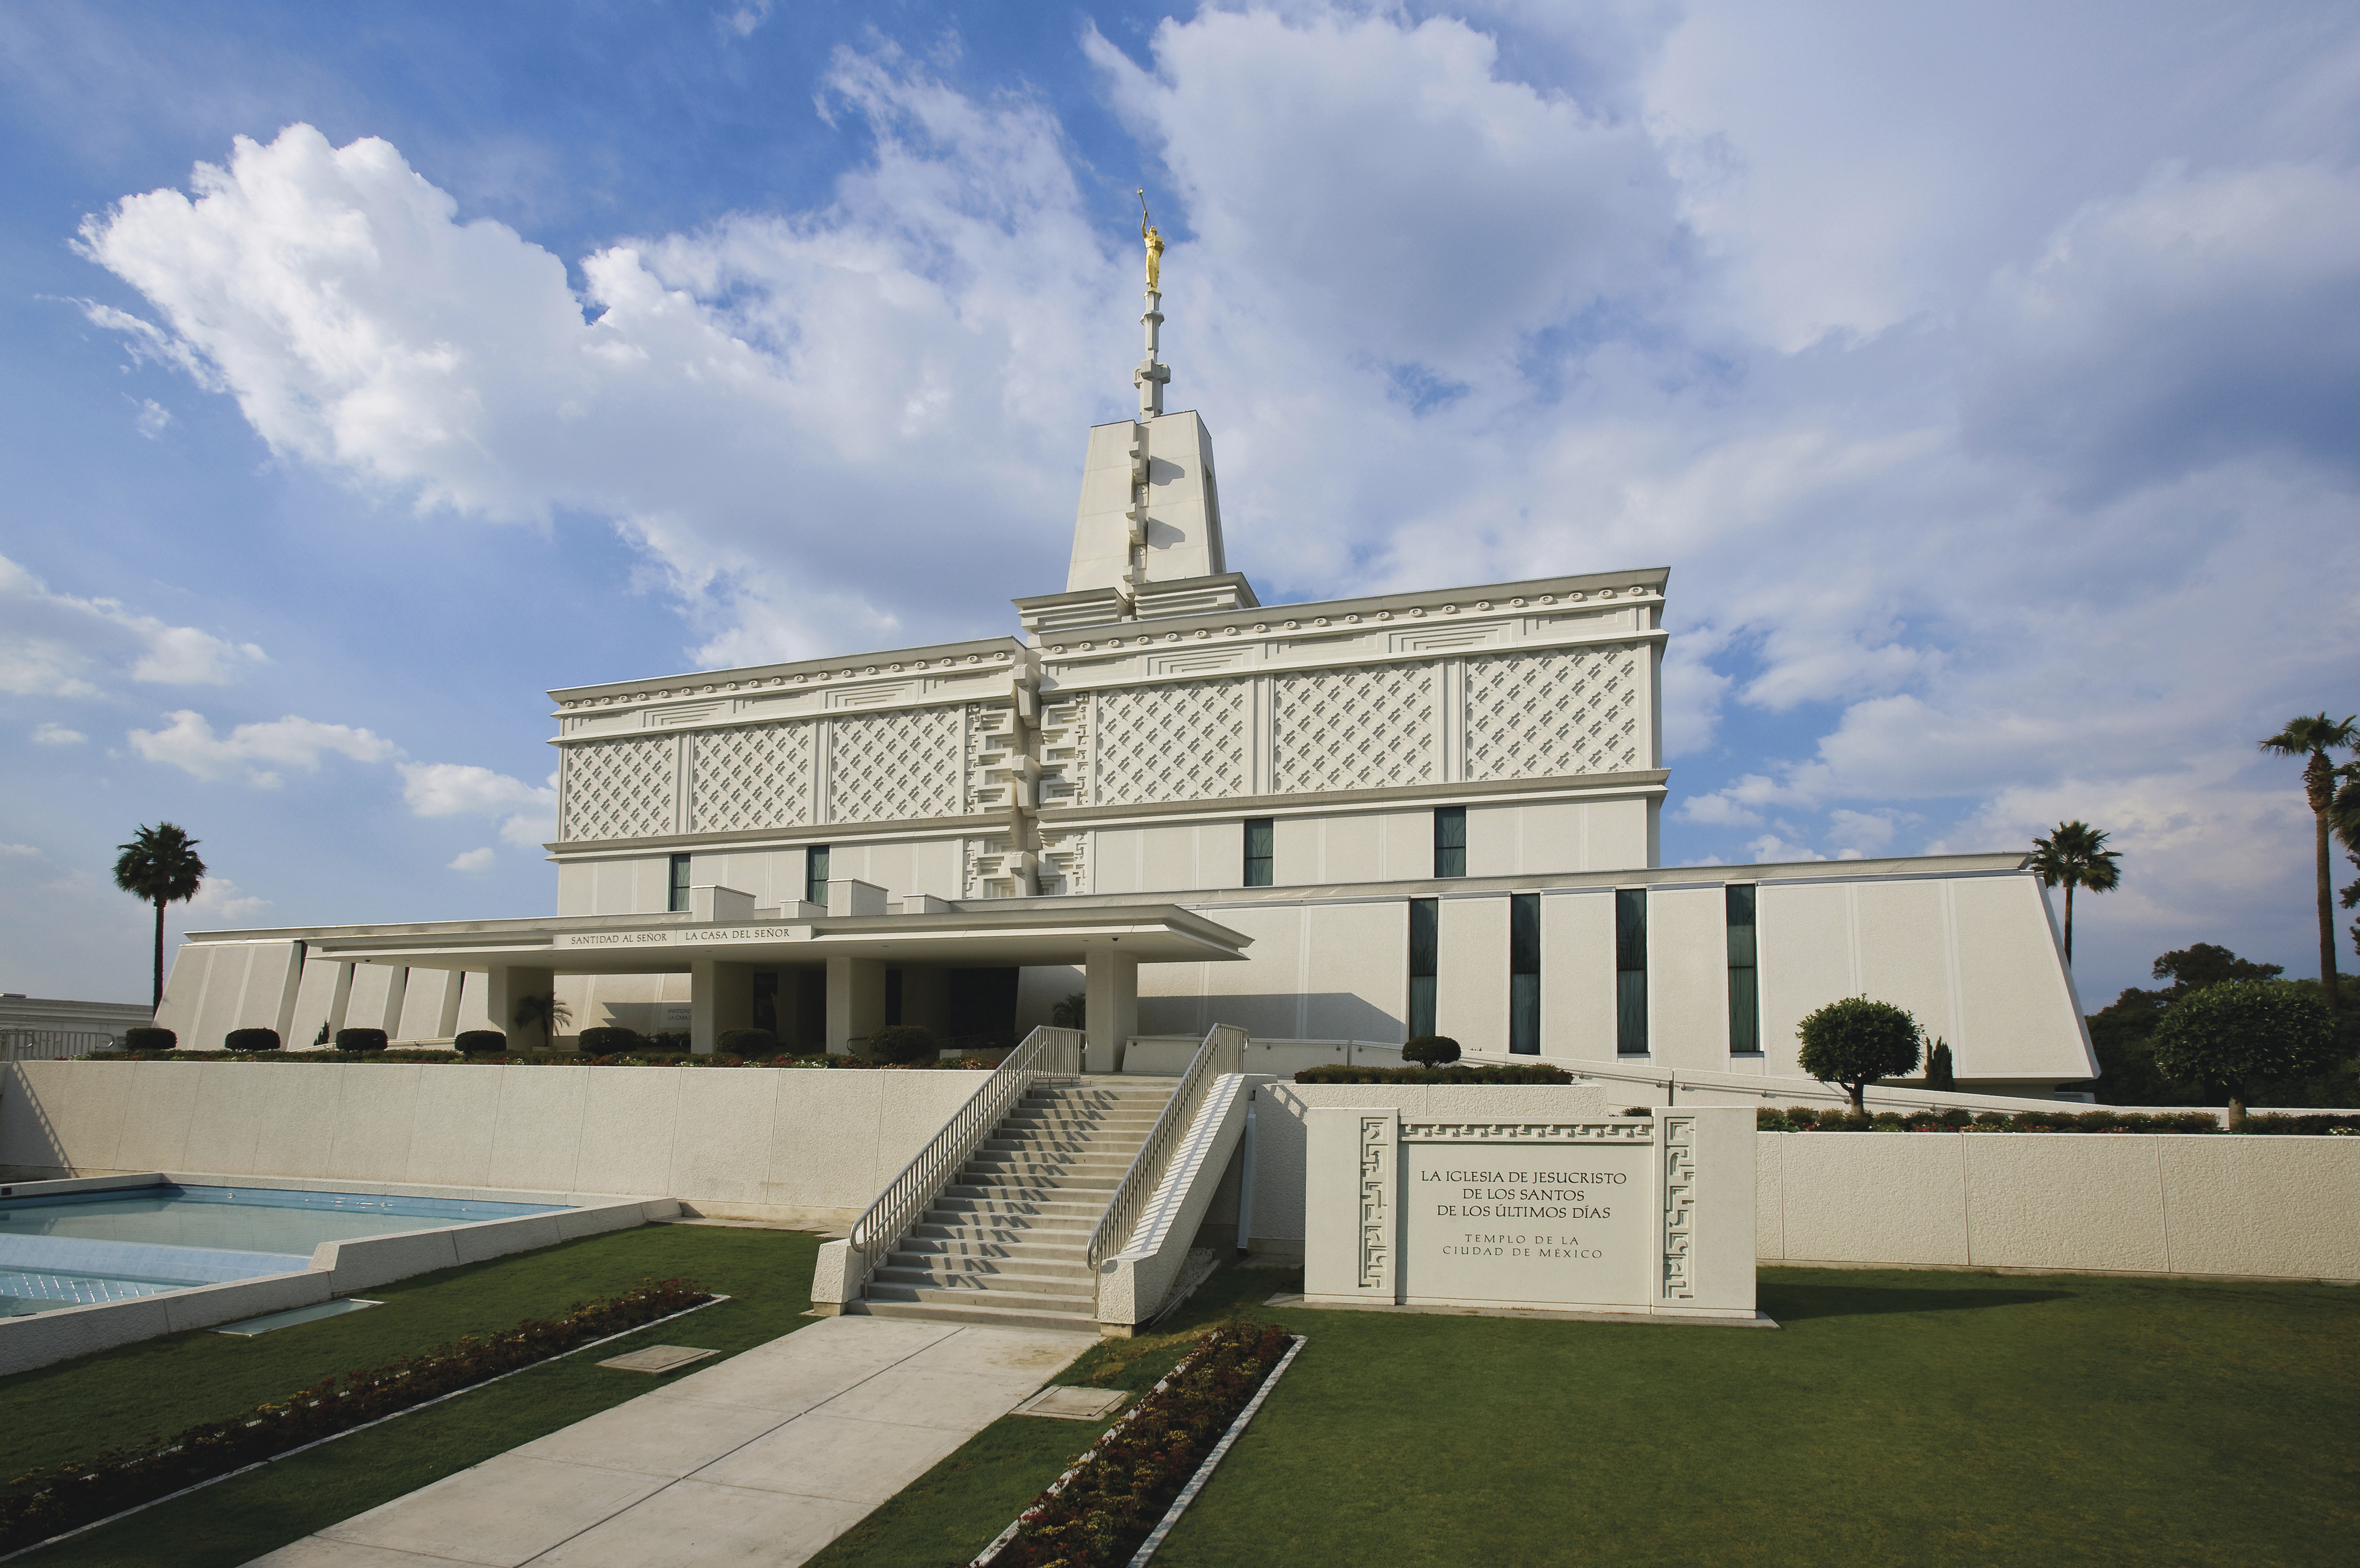 The front entrance of the Mexico City Mexico Temple on a partly cloudy day.